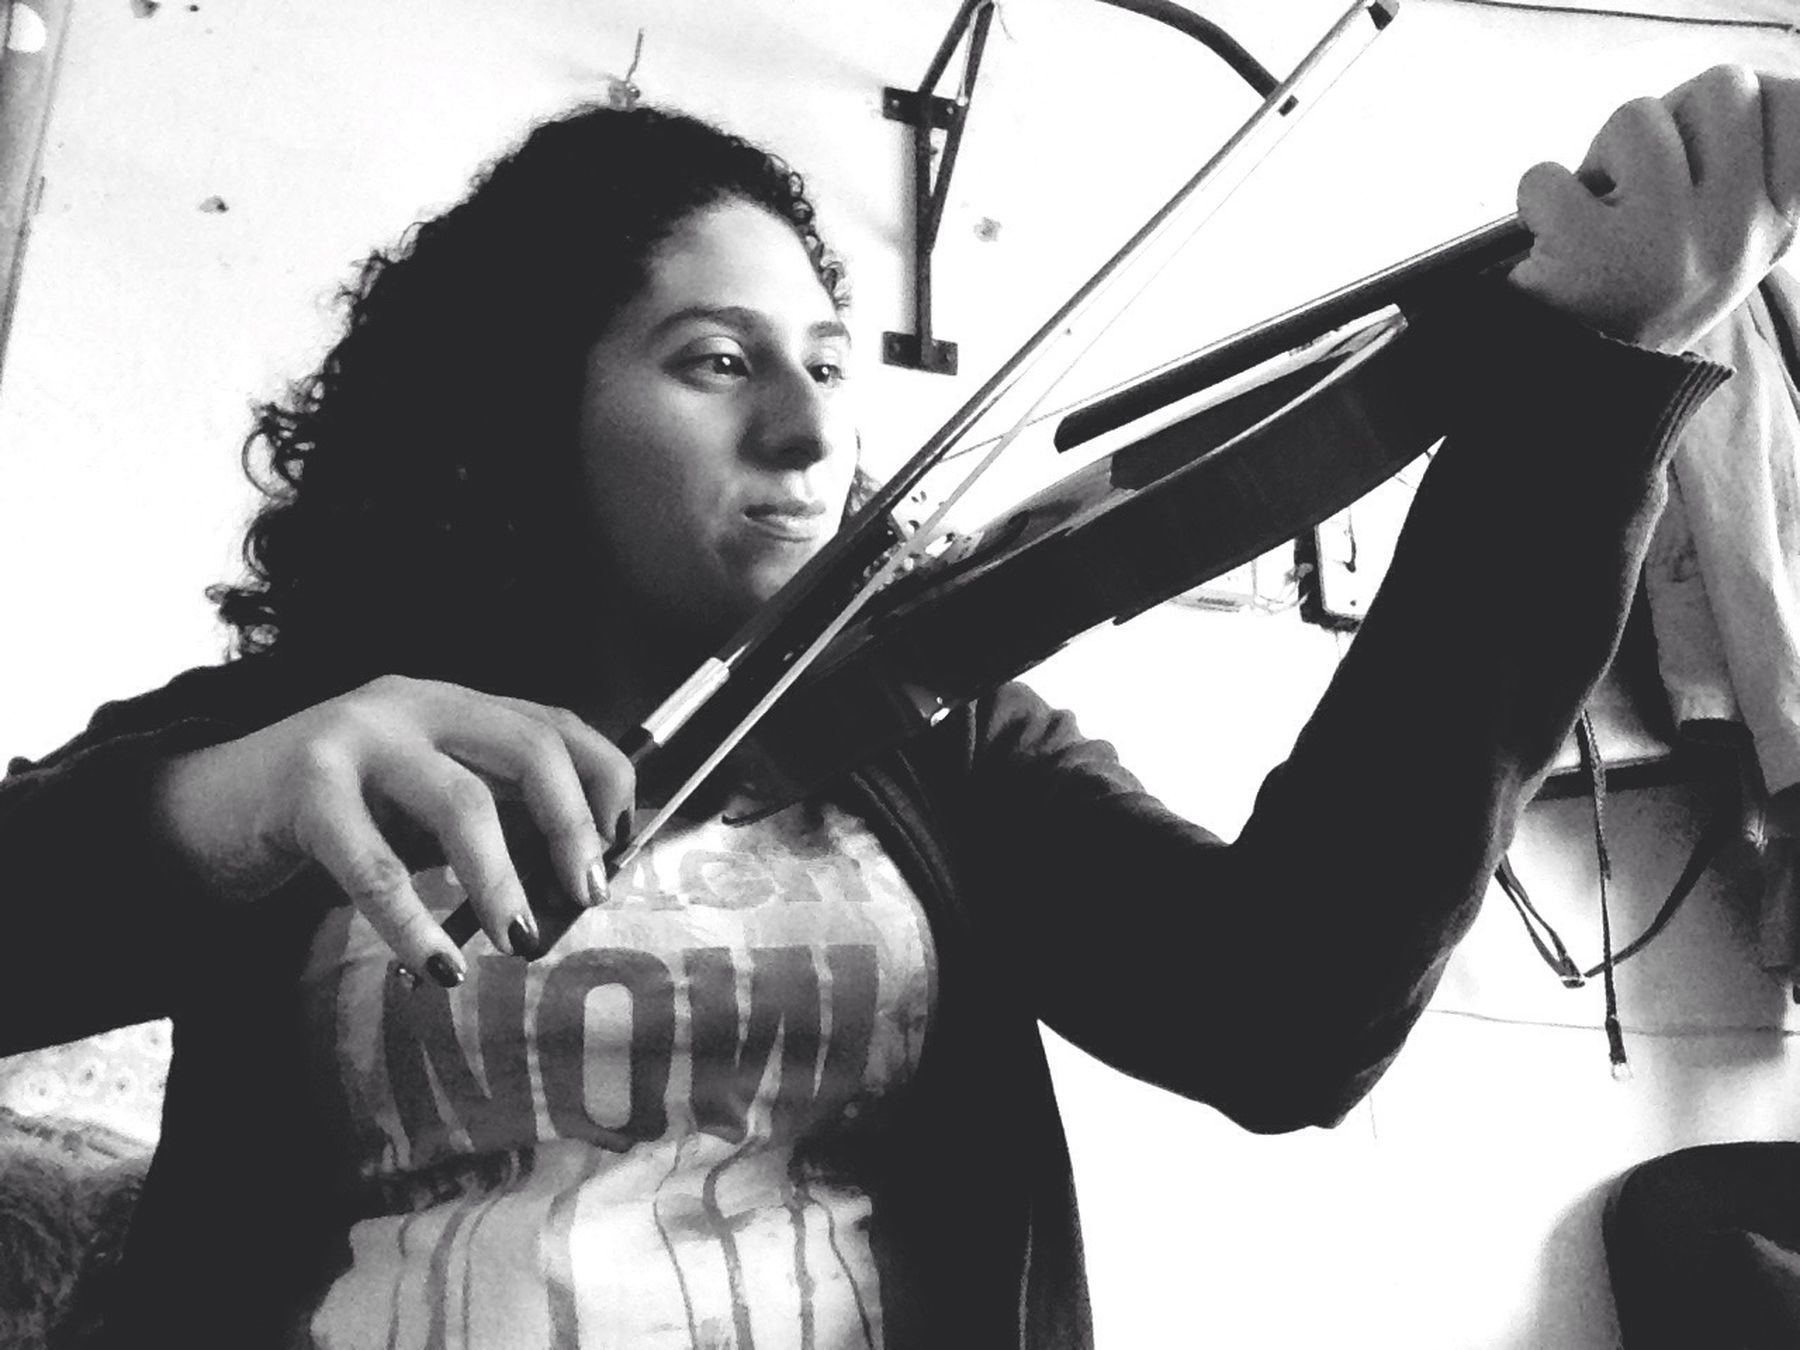 Getting to know each other... Niccolo 🎻 Kali8a Violinistinprogress